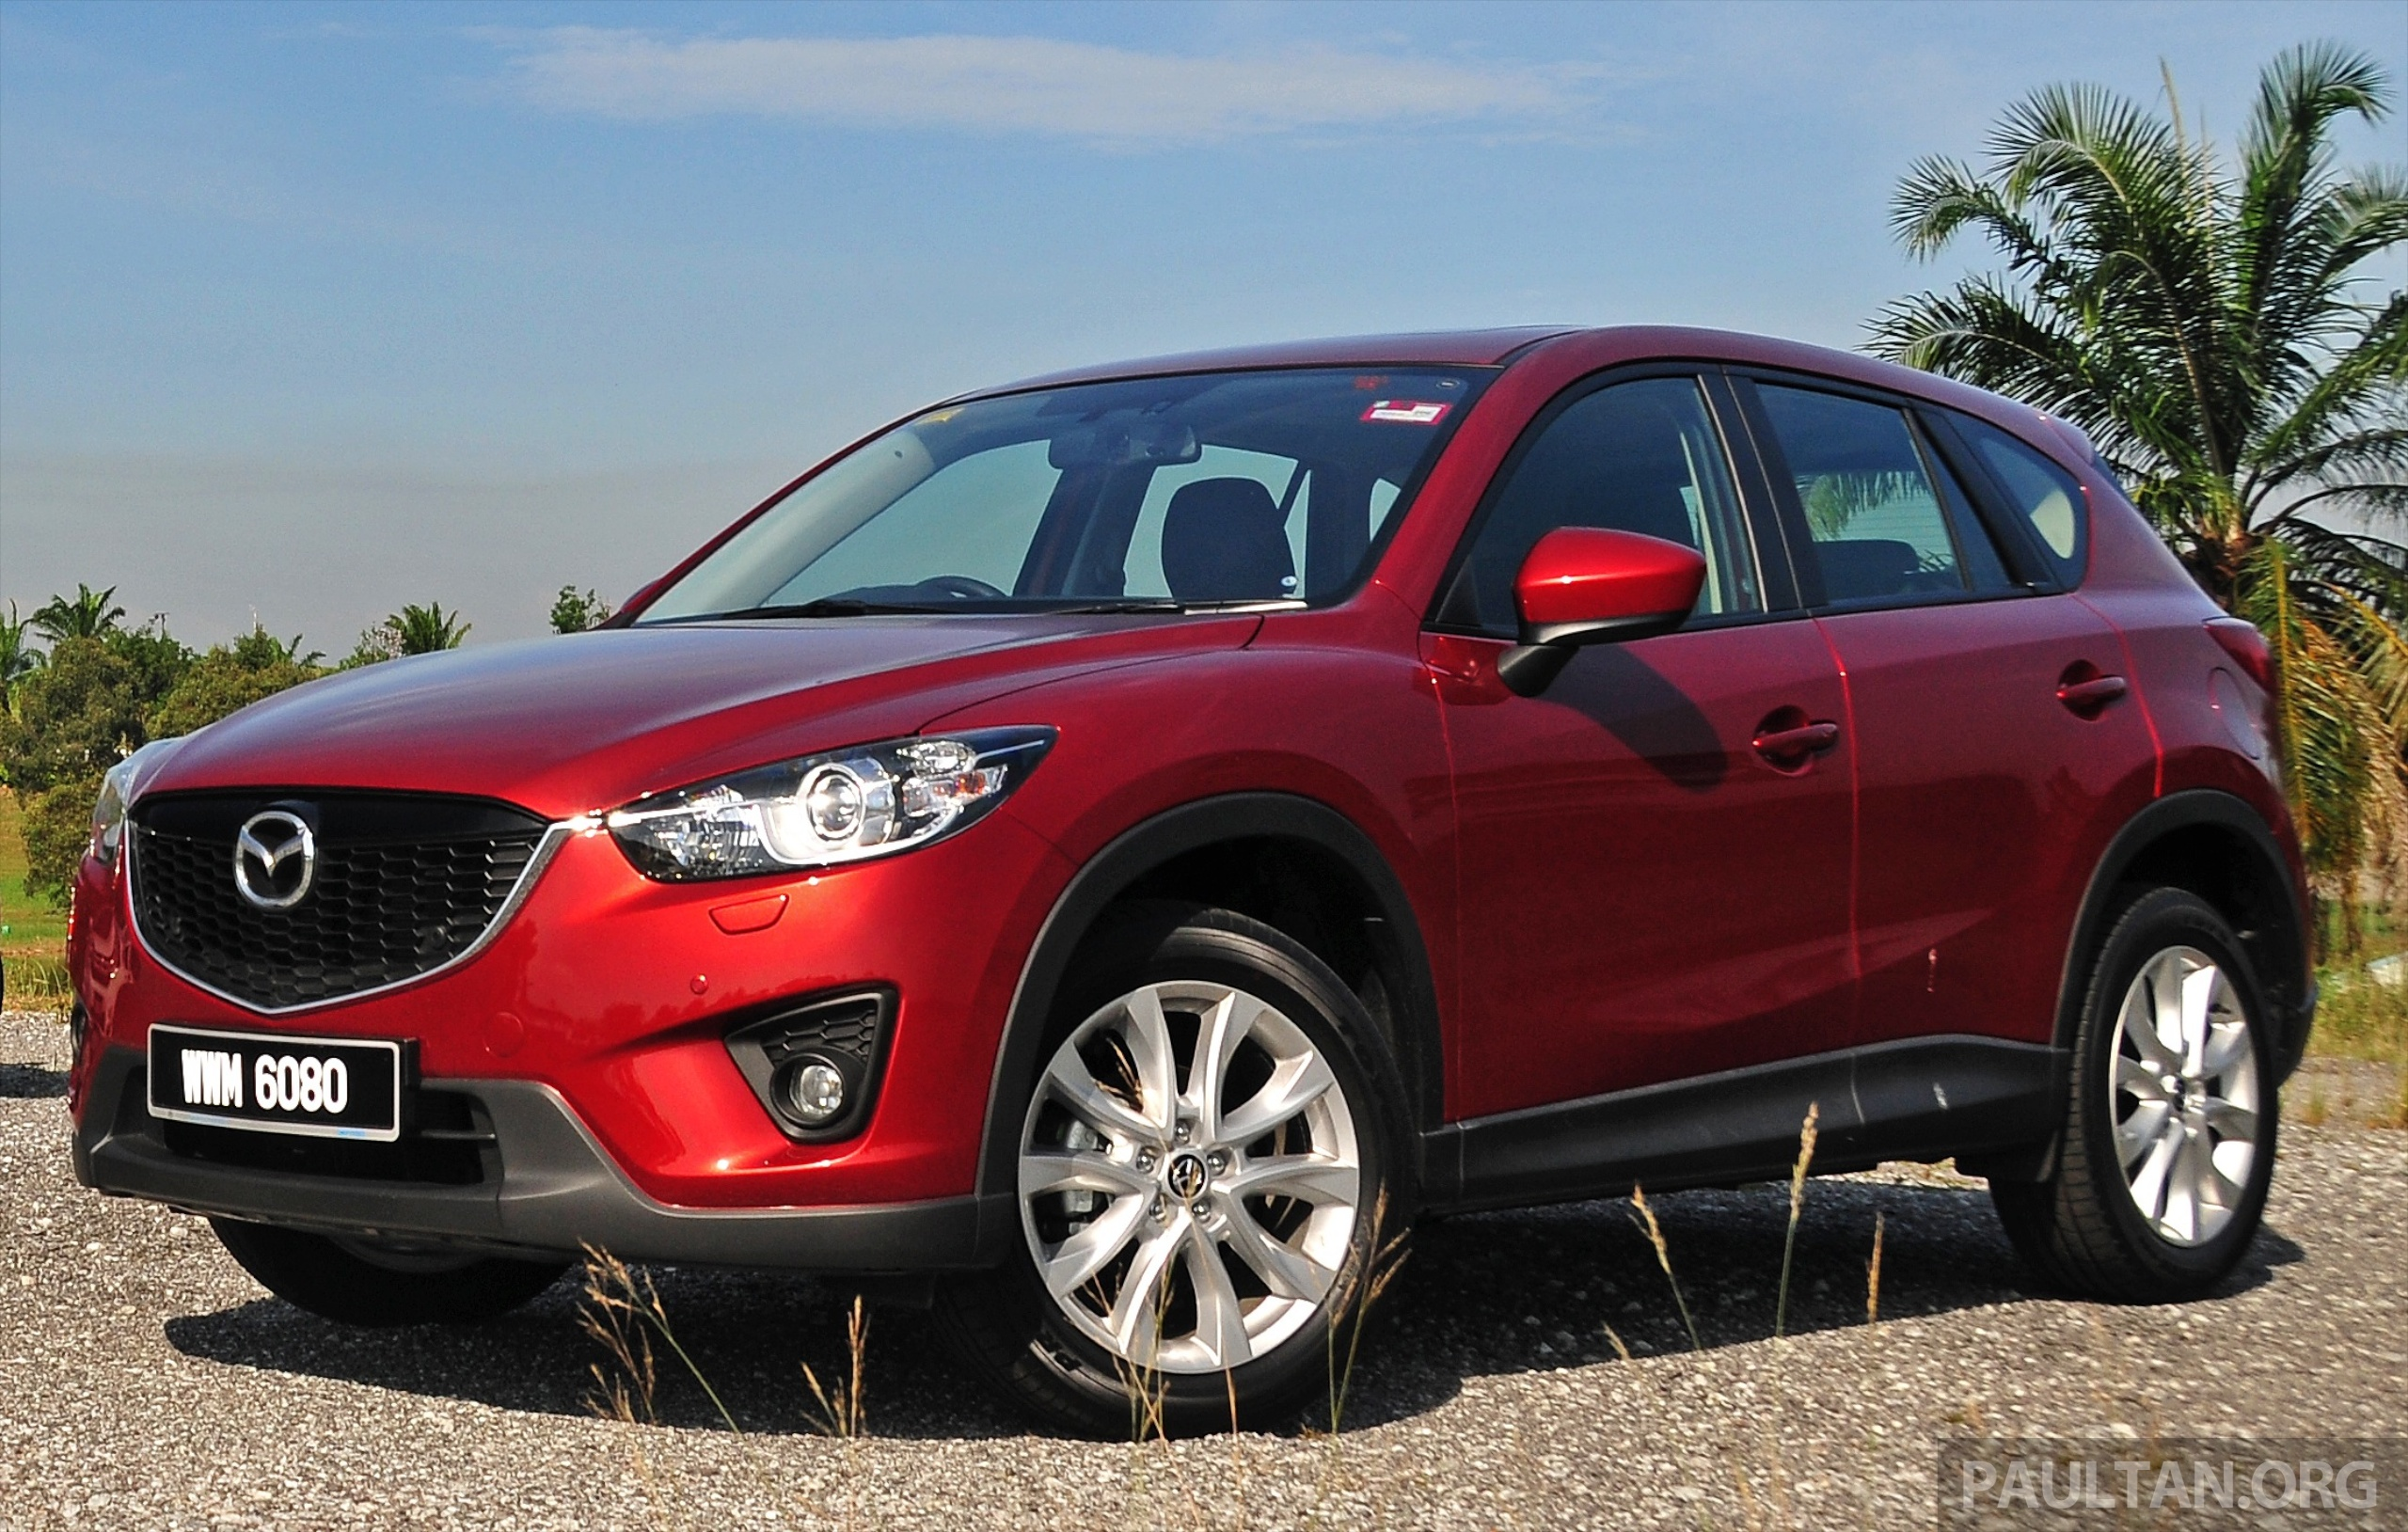 Mazda3 Based Crossover Is Being Considered Report Paul Tan Image 205043